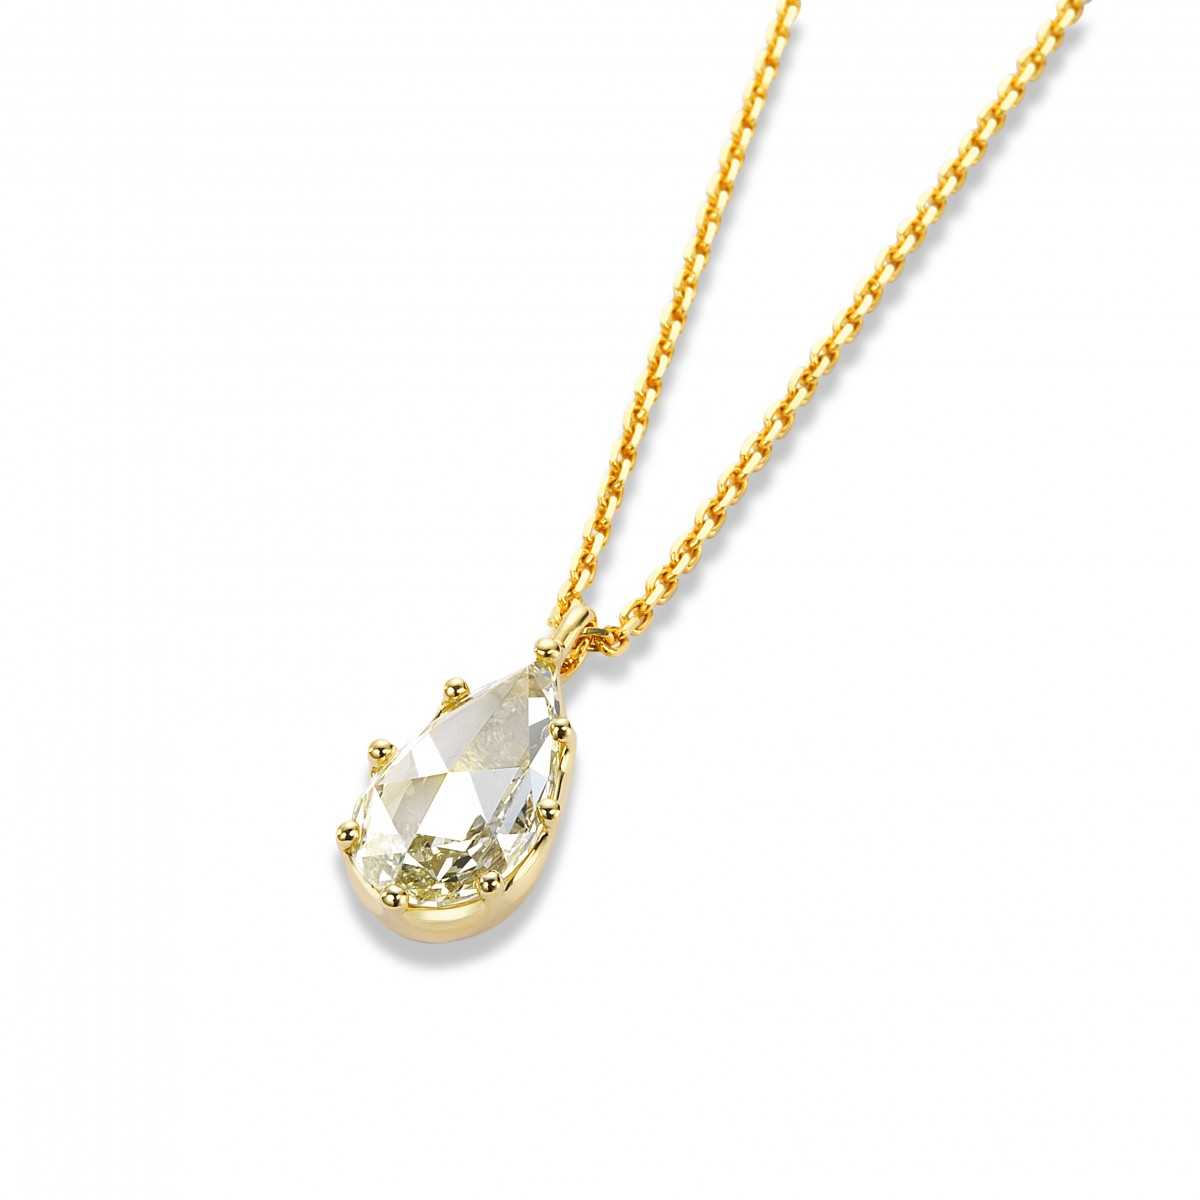 2ct Pear Shape Rose Cut Necklace By Mark Hiroshi Willis